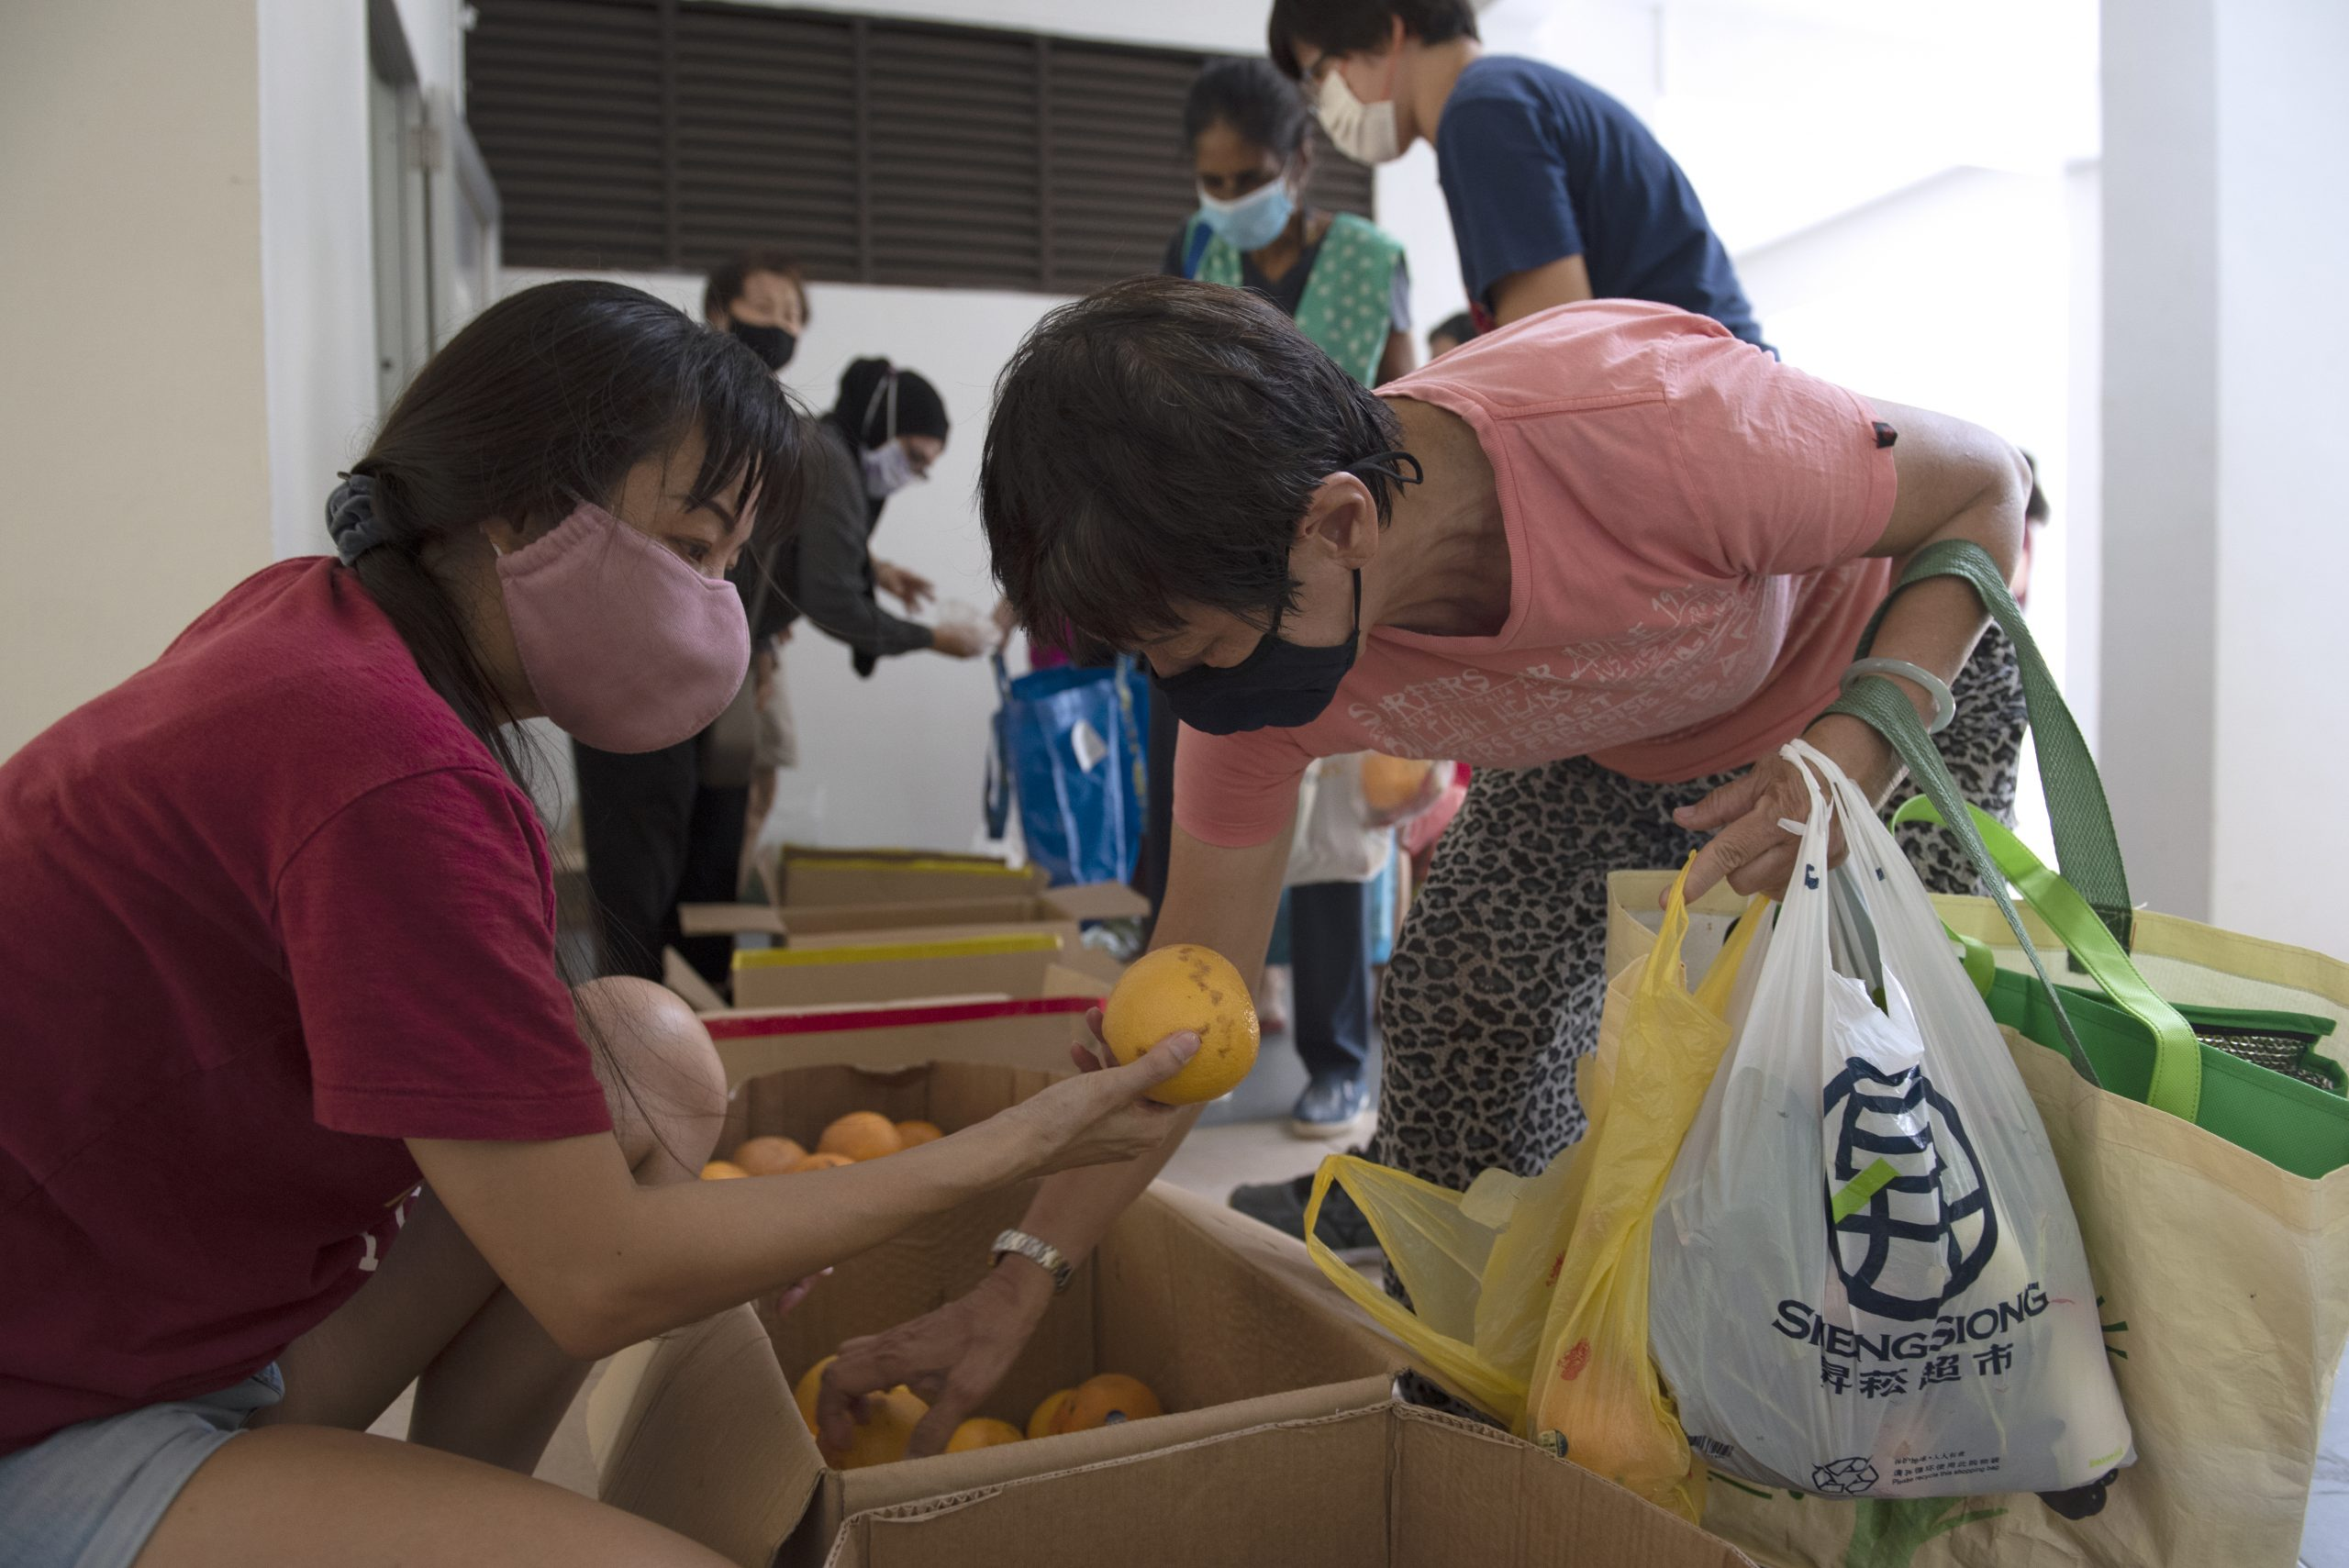 Volunteers helping to distribute rescued fruit and vegetables to residents at Block 20 Marine Terrace, reserving some for those with mobility issues. Residents are encouraged to take only what they need, so that everyone gets some food.